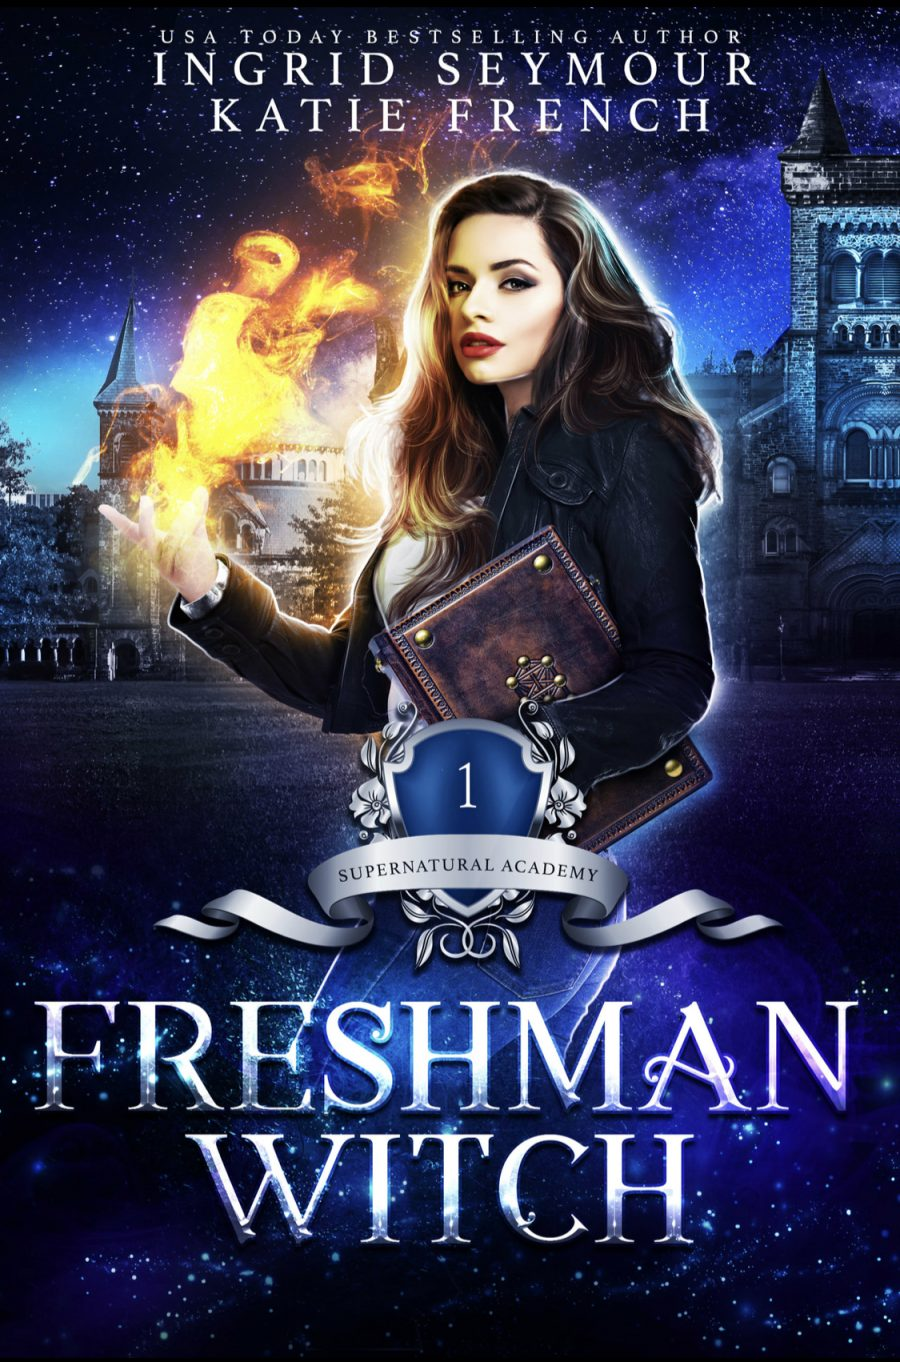 Freshman Witch by Ingrid Seymour and Katie French - A Book Review #BookReview #Review #PNR #Academy #Witches #Paranormal #NA #College